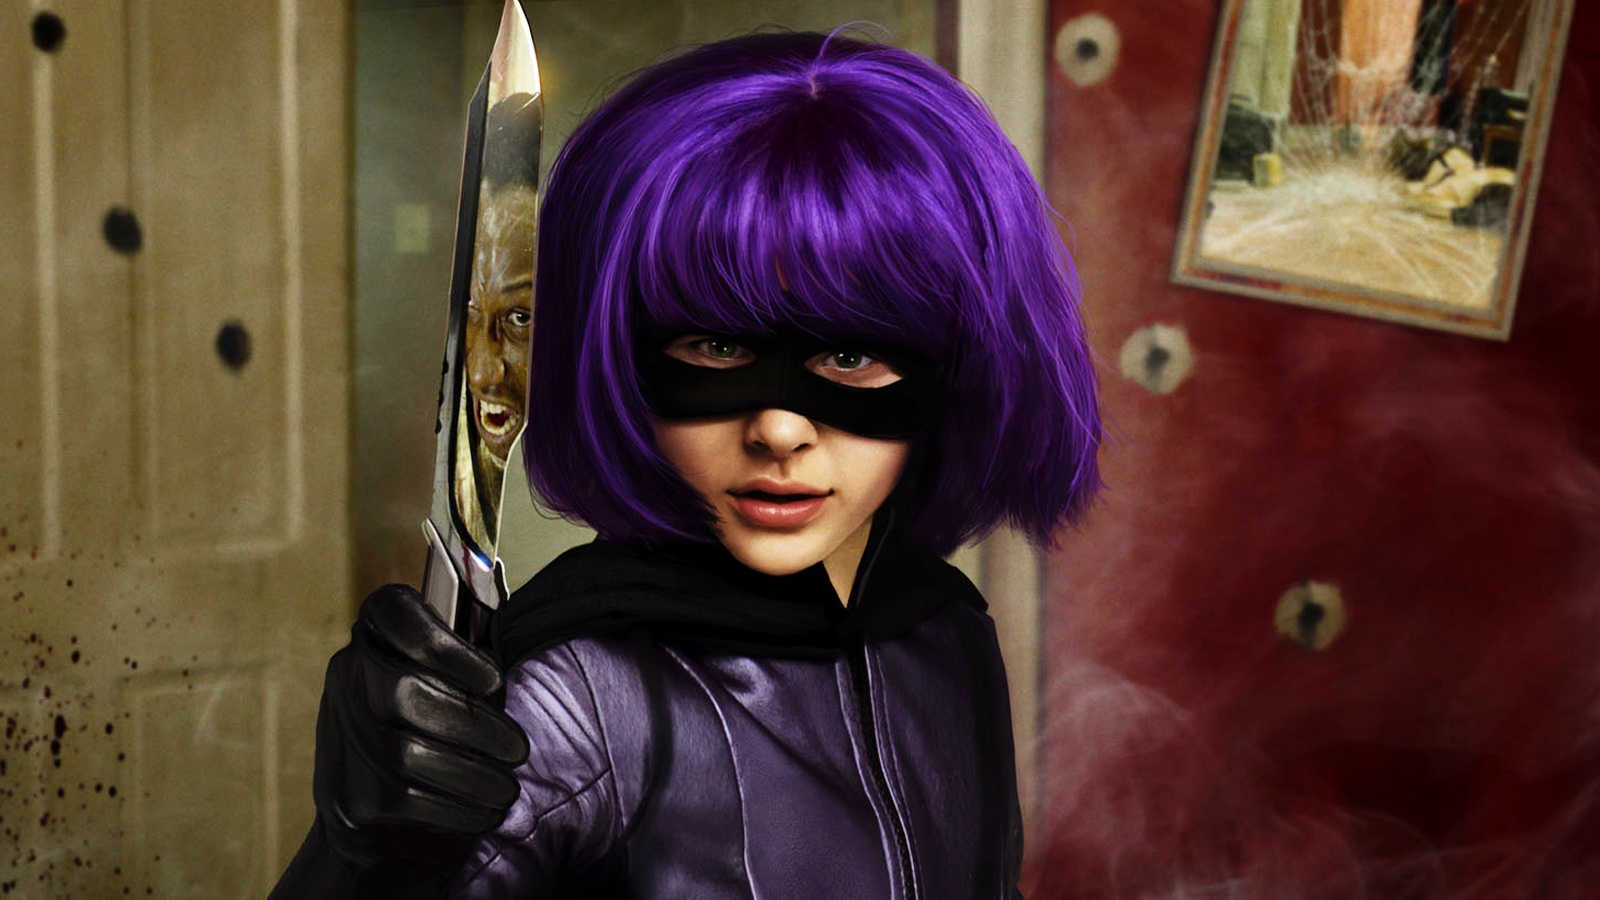 Hit Girl in Kick Ass 942.26 Kb